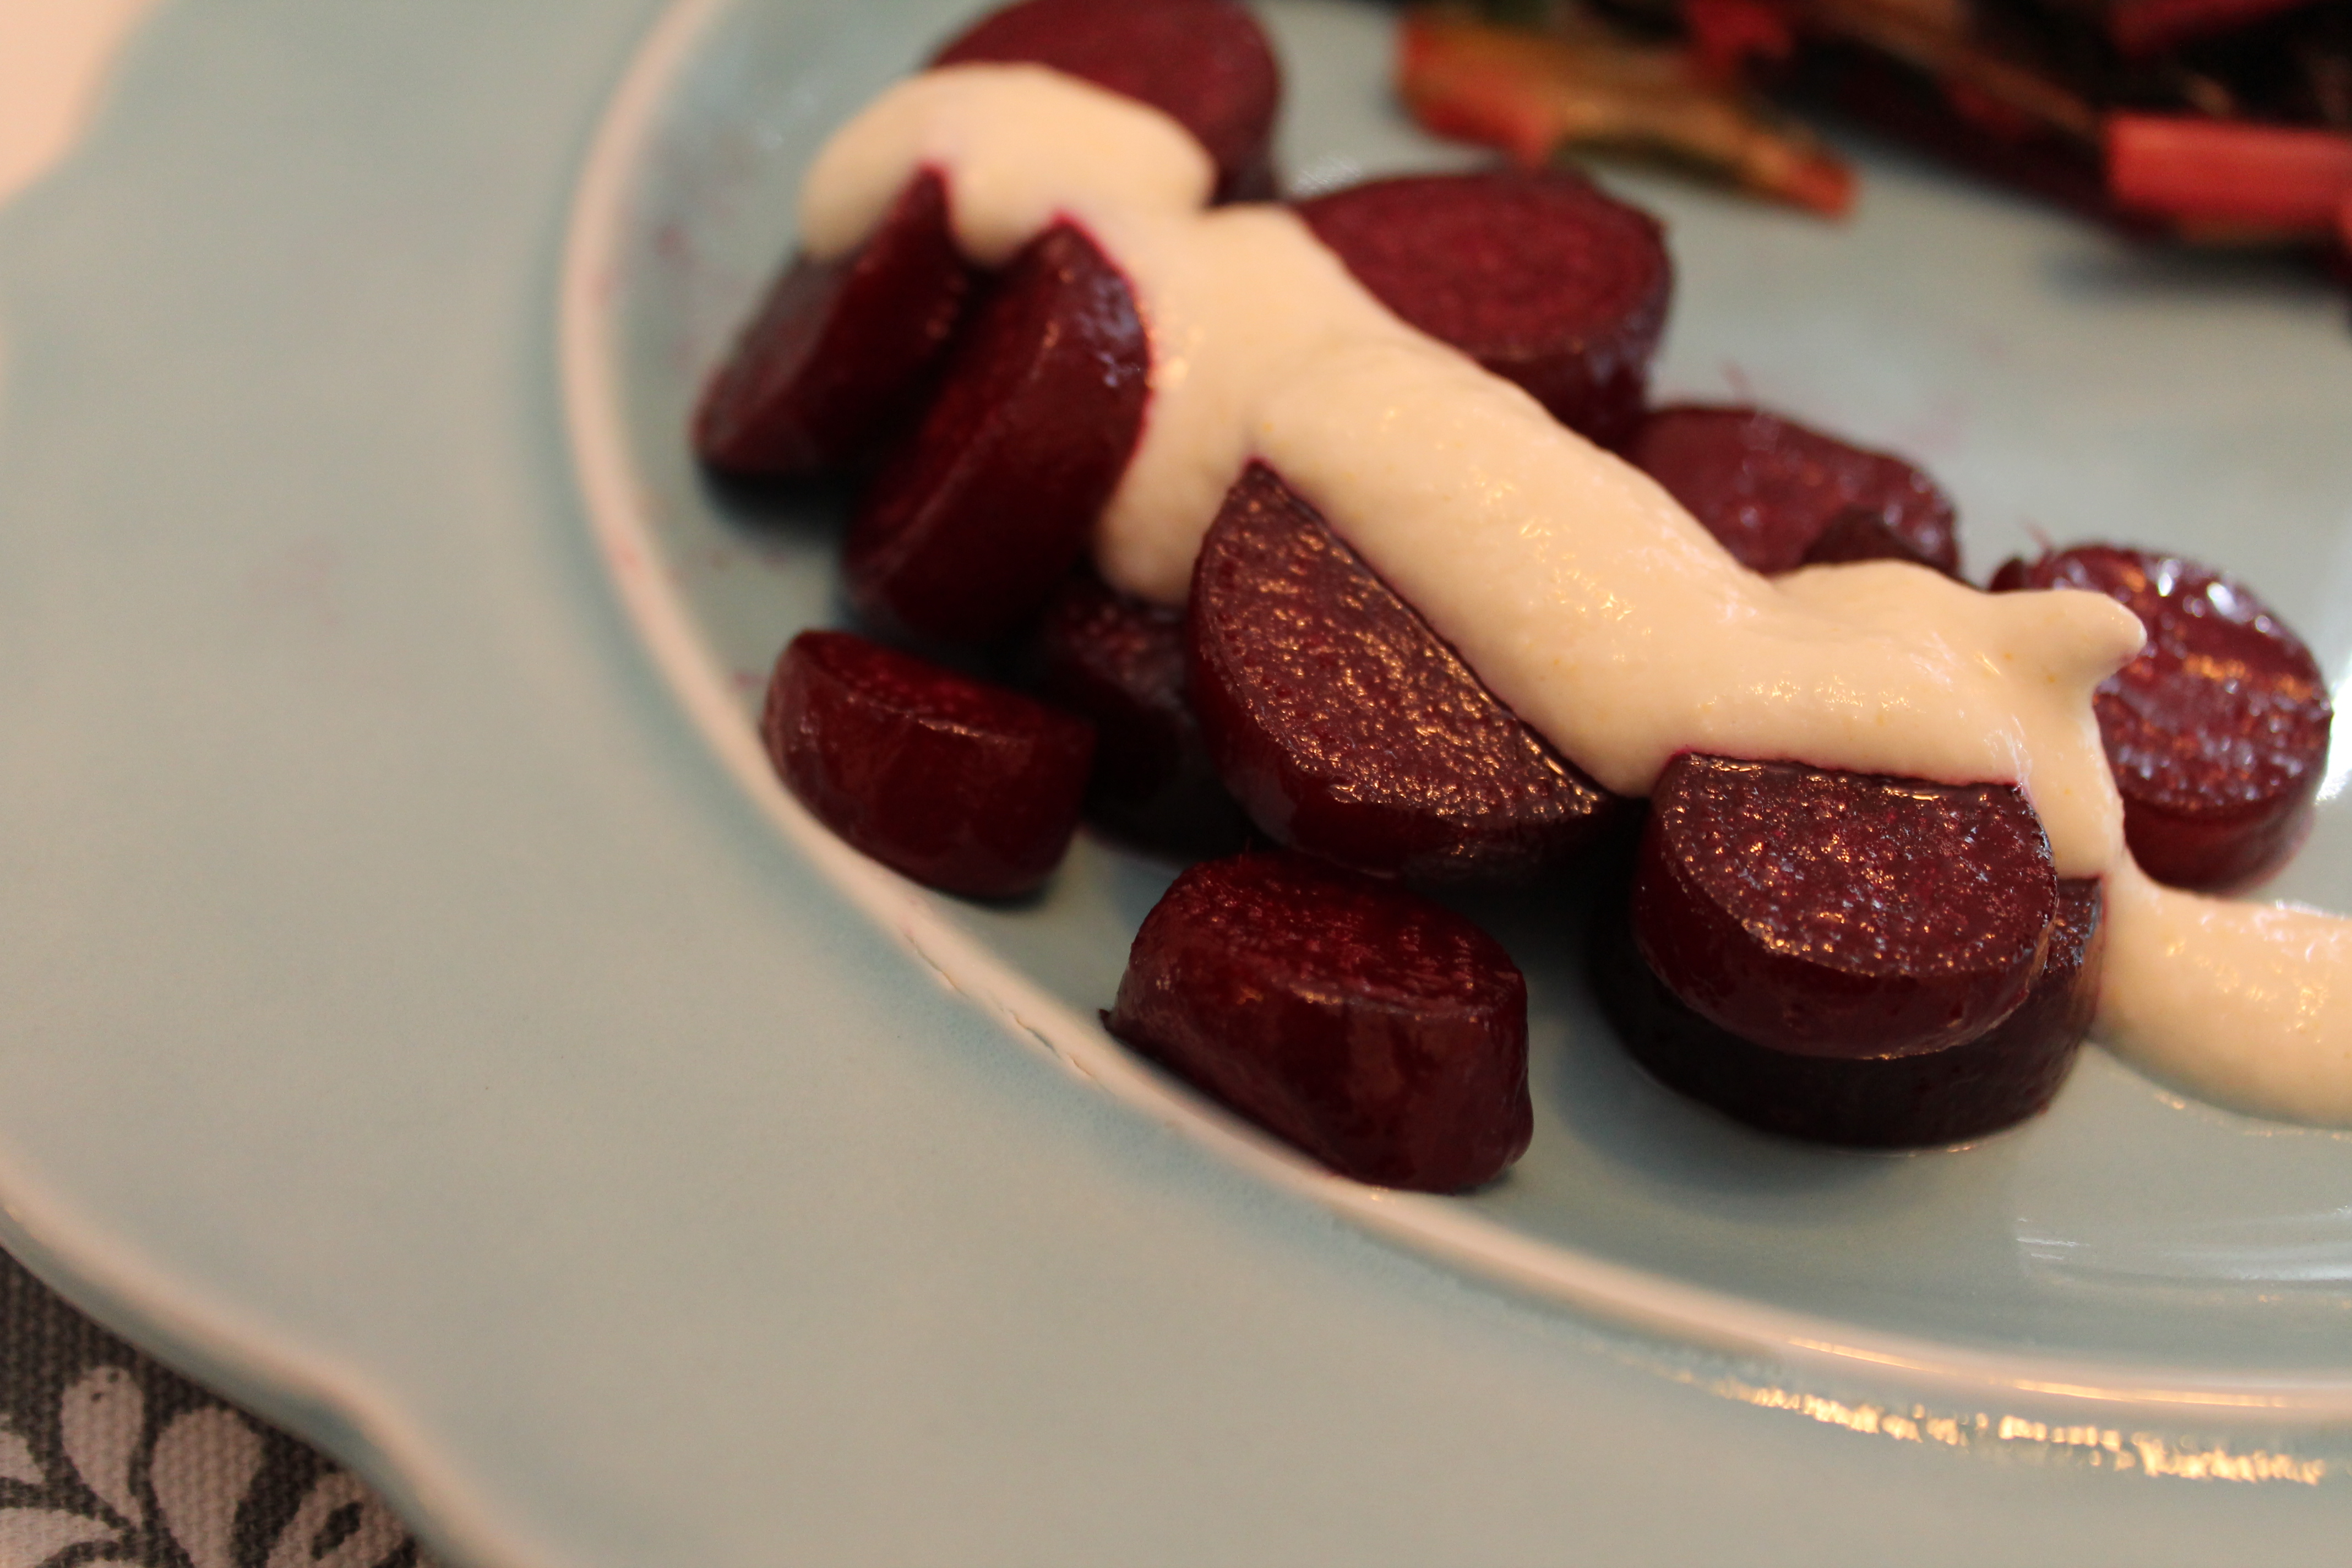 Roasted Beet with Horseradish Cream